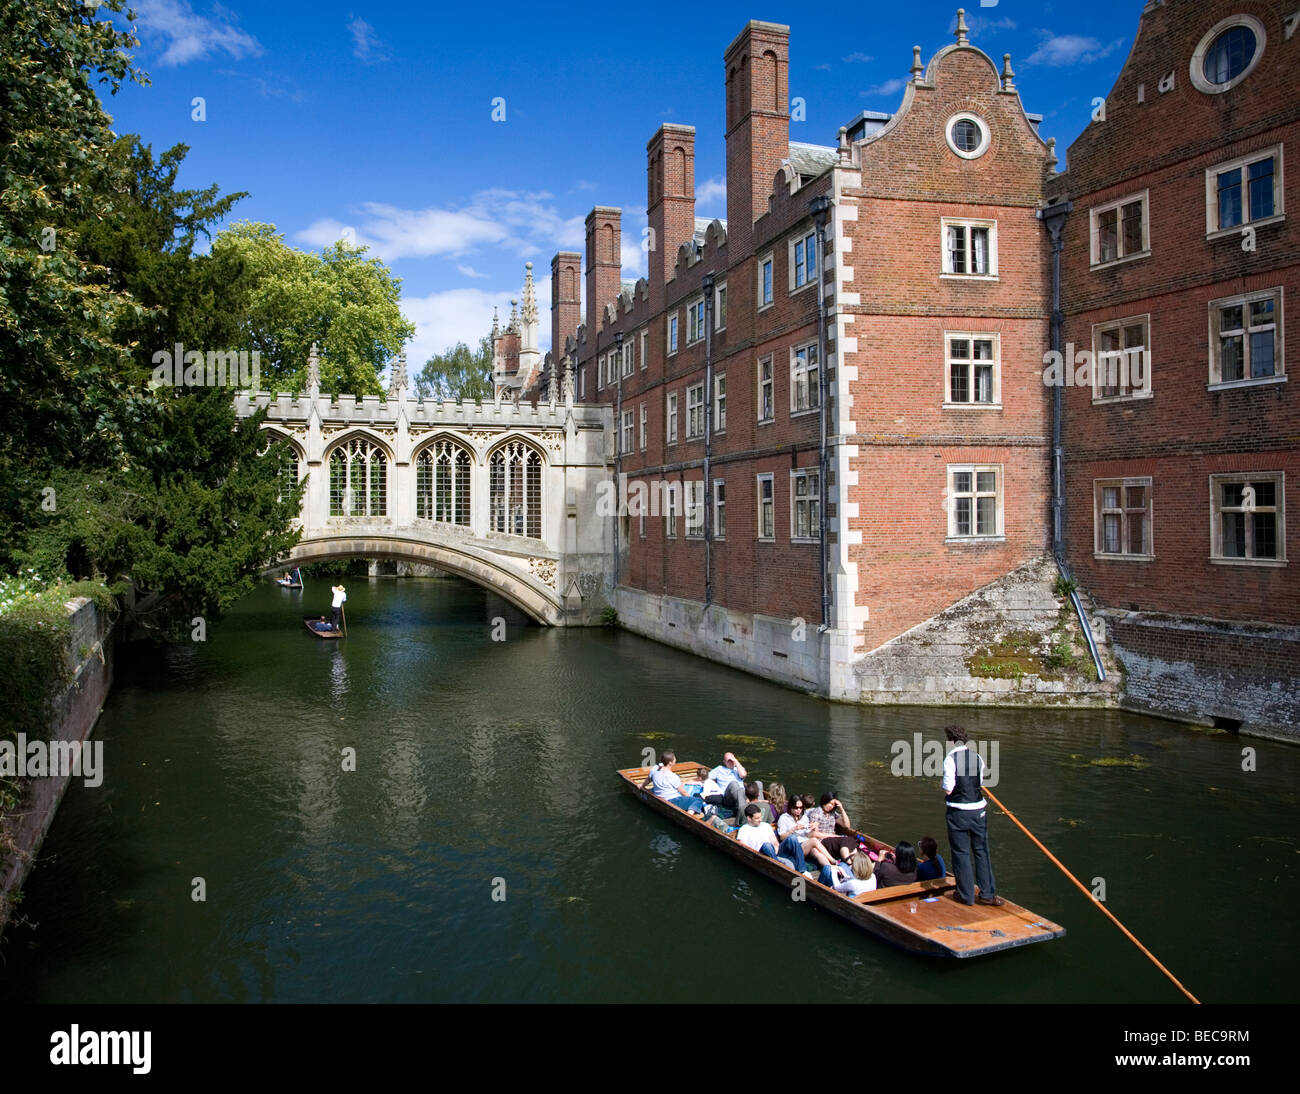 Punt Boats at the Bridge Of Sighs at st. John's college in Cambridge, Cambridgeshire, UK. - Stock Image